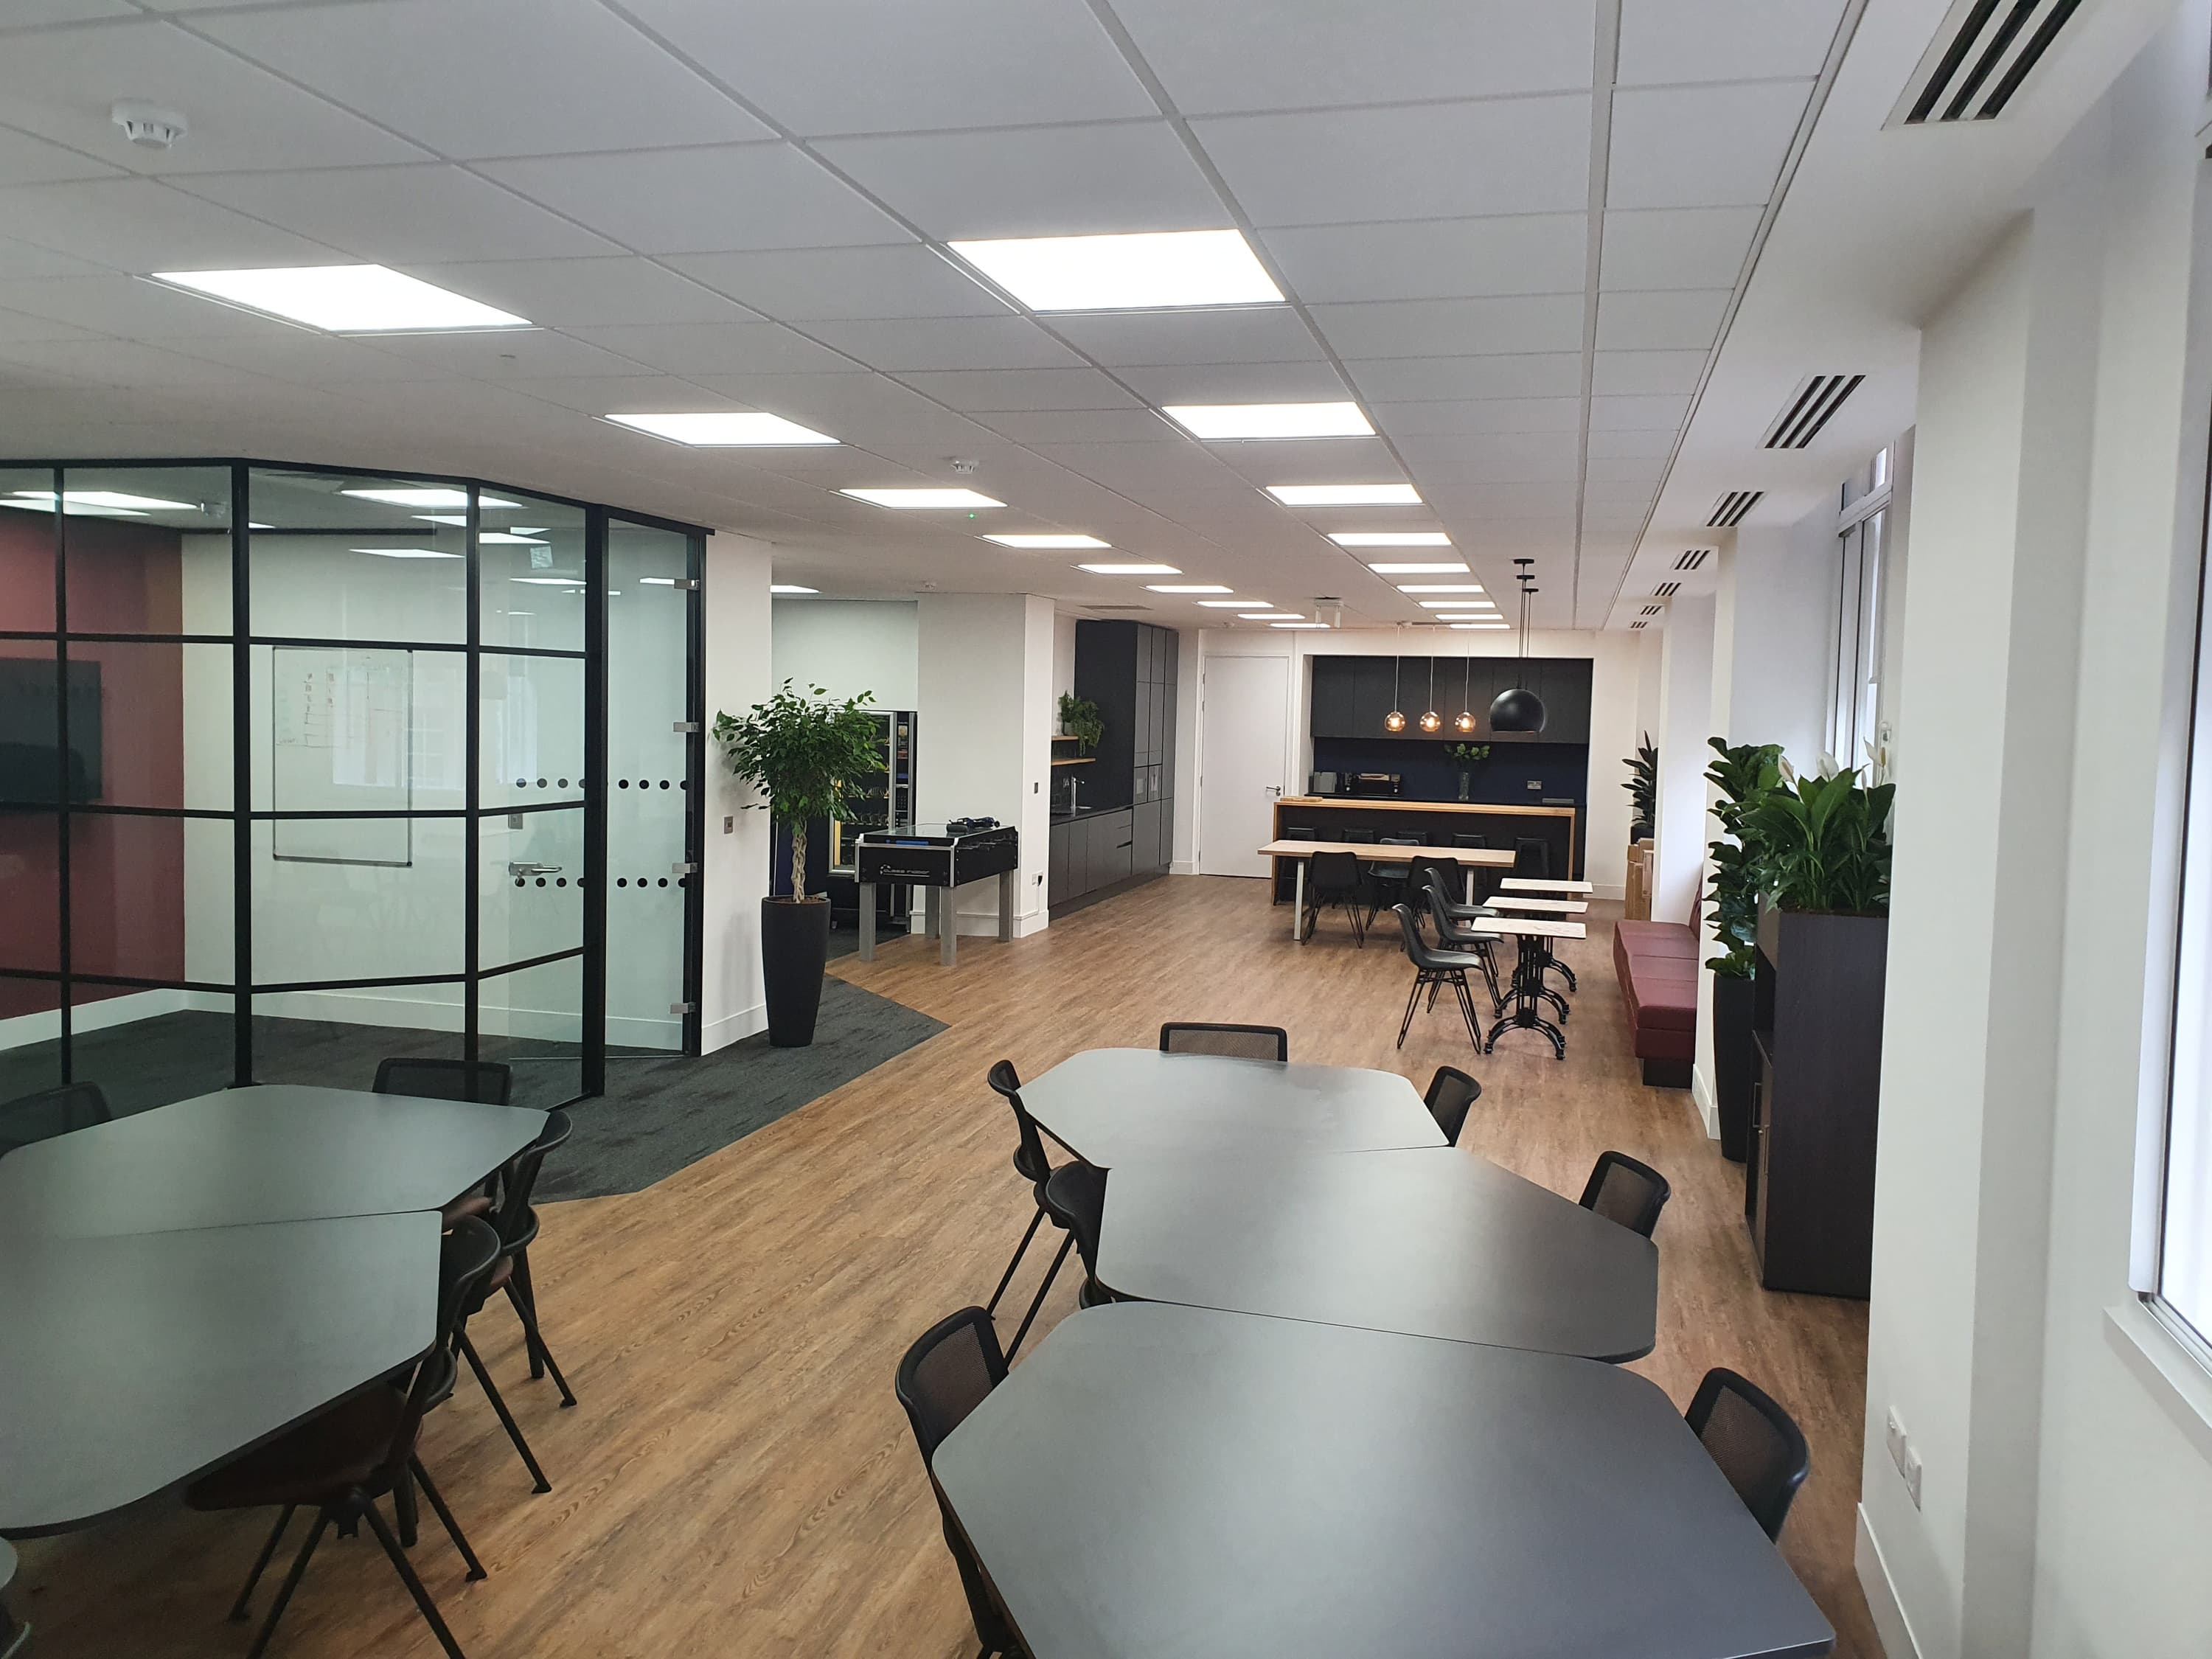 Large office breakout and refreshment area with crittal style partitions and